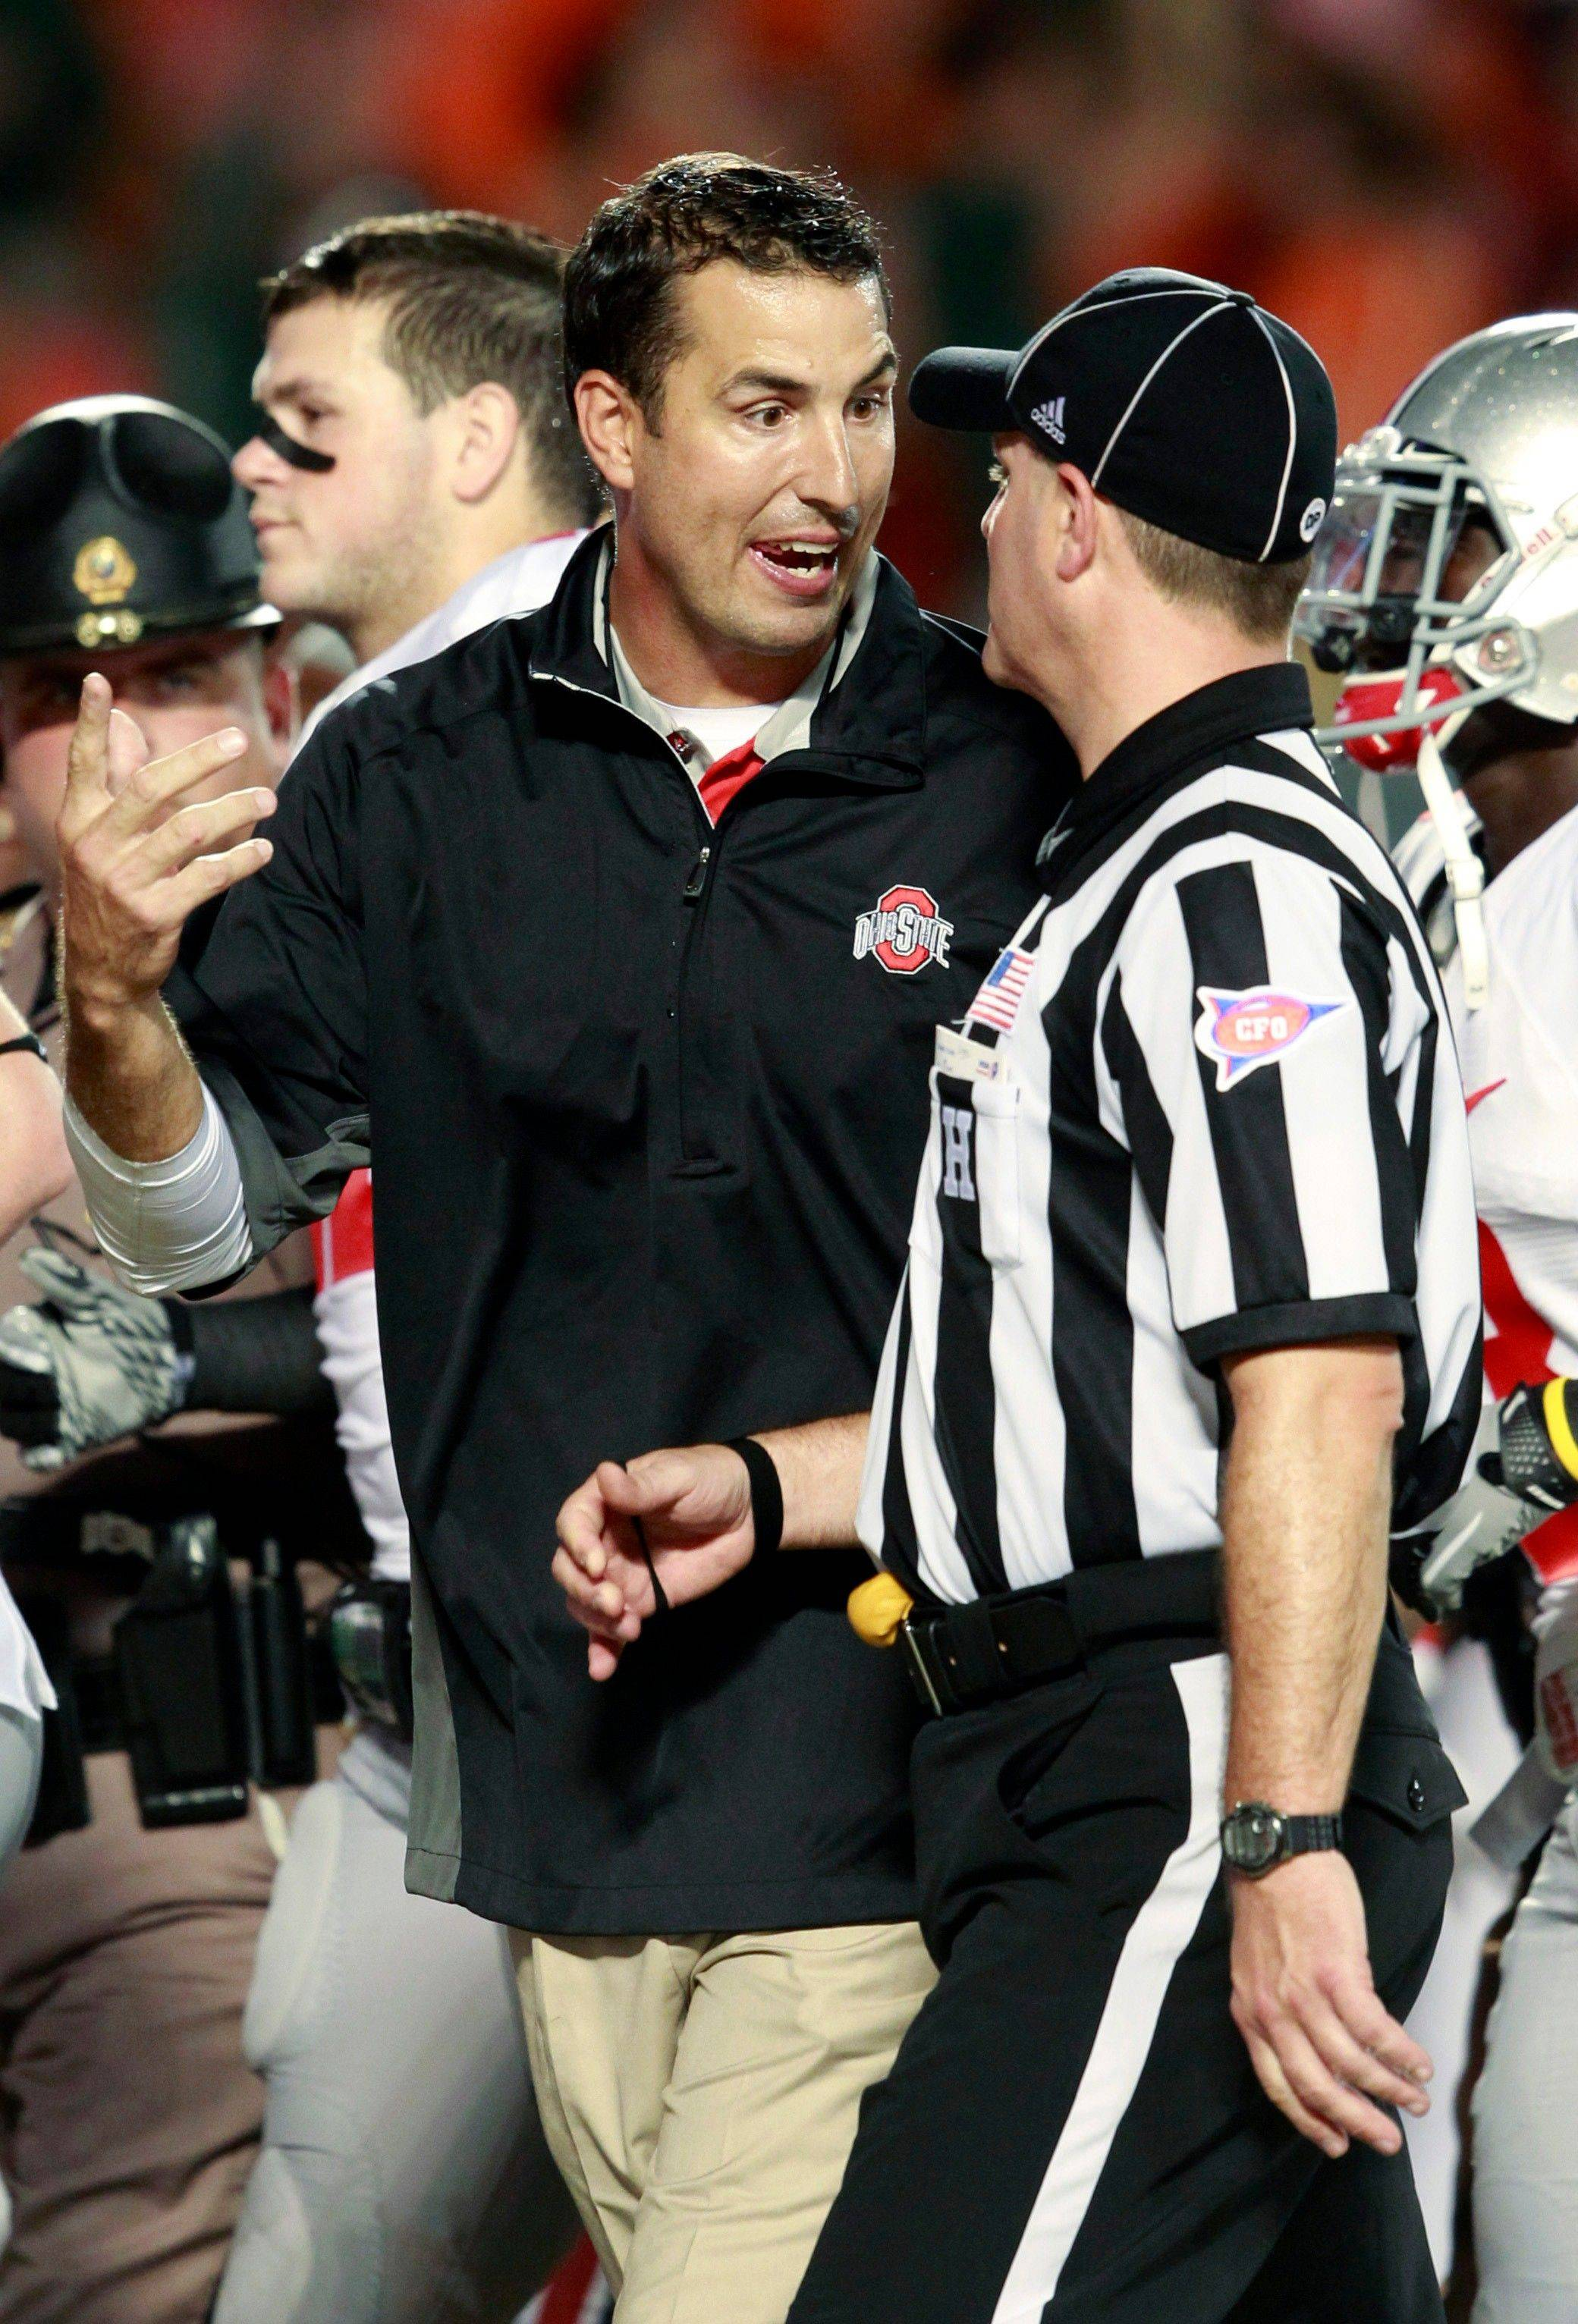 Ohio State head coach Luke Fickell argues with head linesman Michael Dolce at the end of the second quarter of an NCAA college football game against Miami. In their loss to Miami, the offense couldn�t do much of anything and the defense was dinged for two early touchdowns that tilted the whole game into an uphill battle. Now Ohio State tries to find itself and its best lineup as it prepares to face Colorad